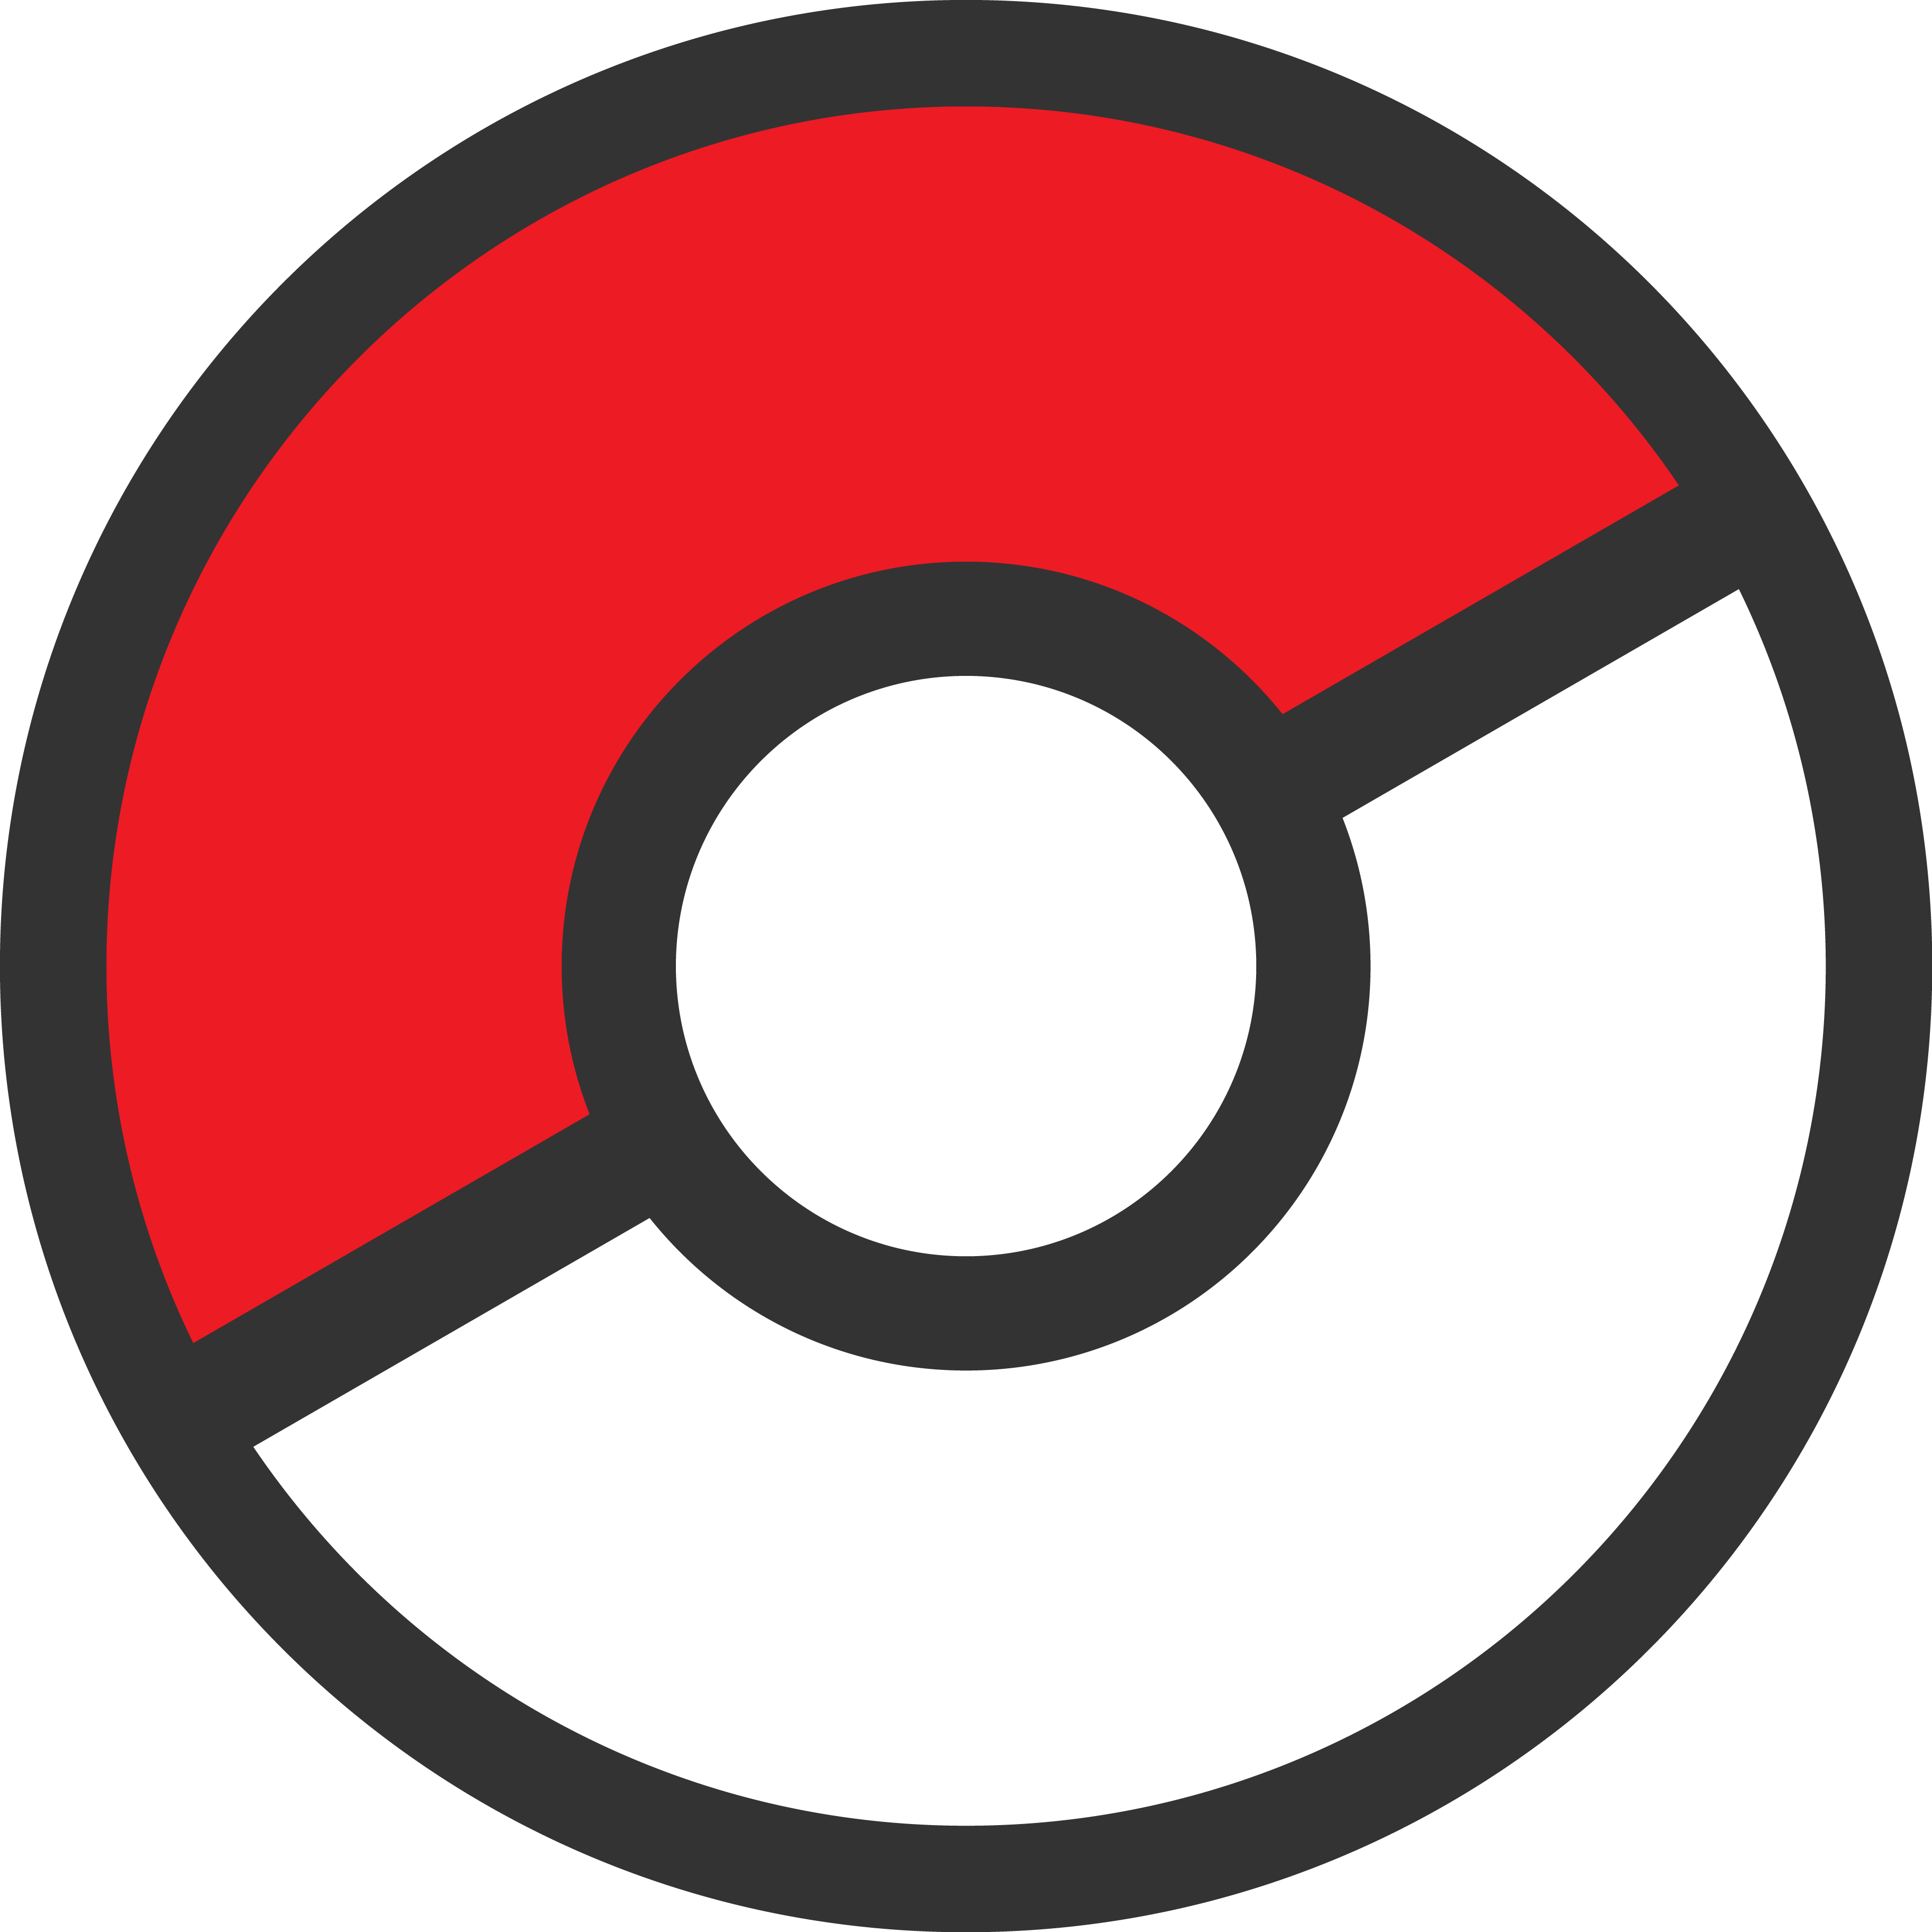 Pokeball, pokemon ball PNG images free download.